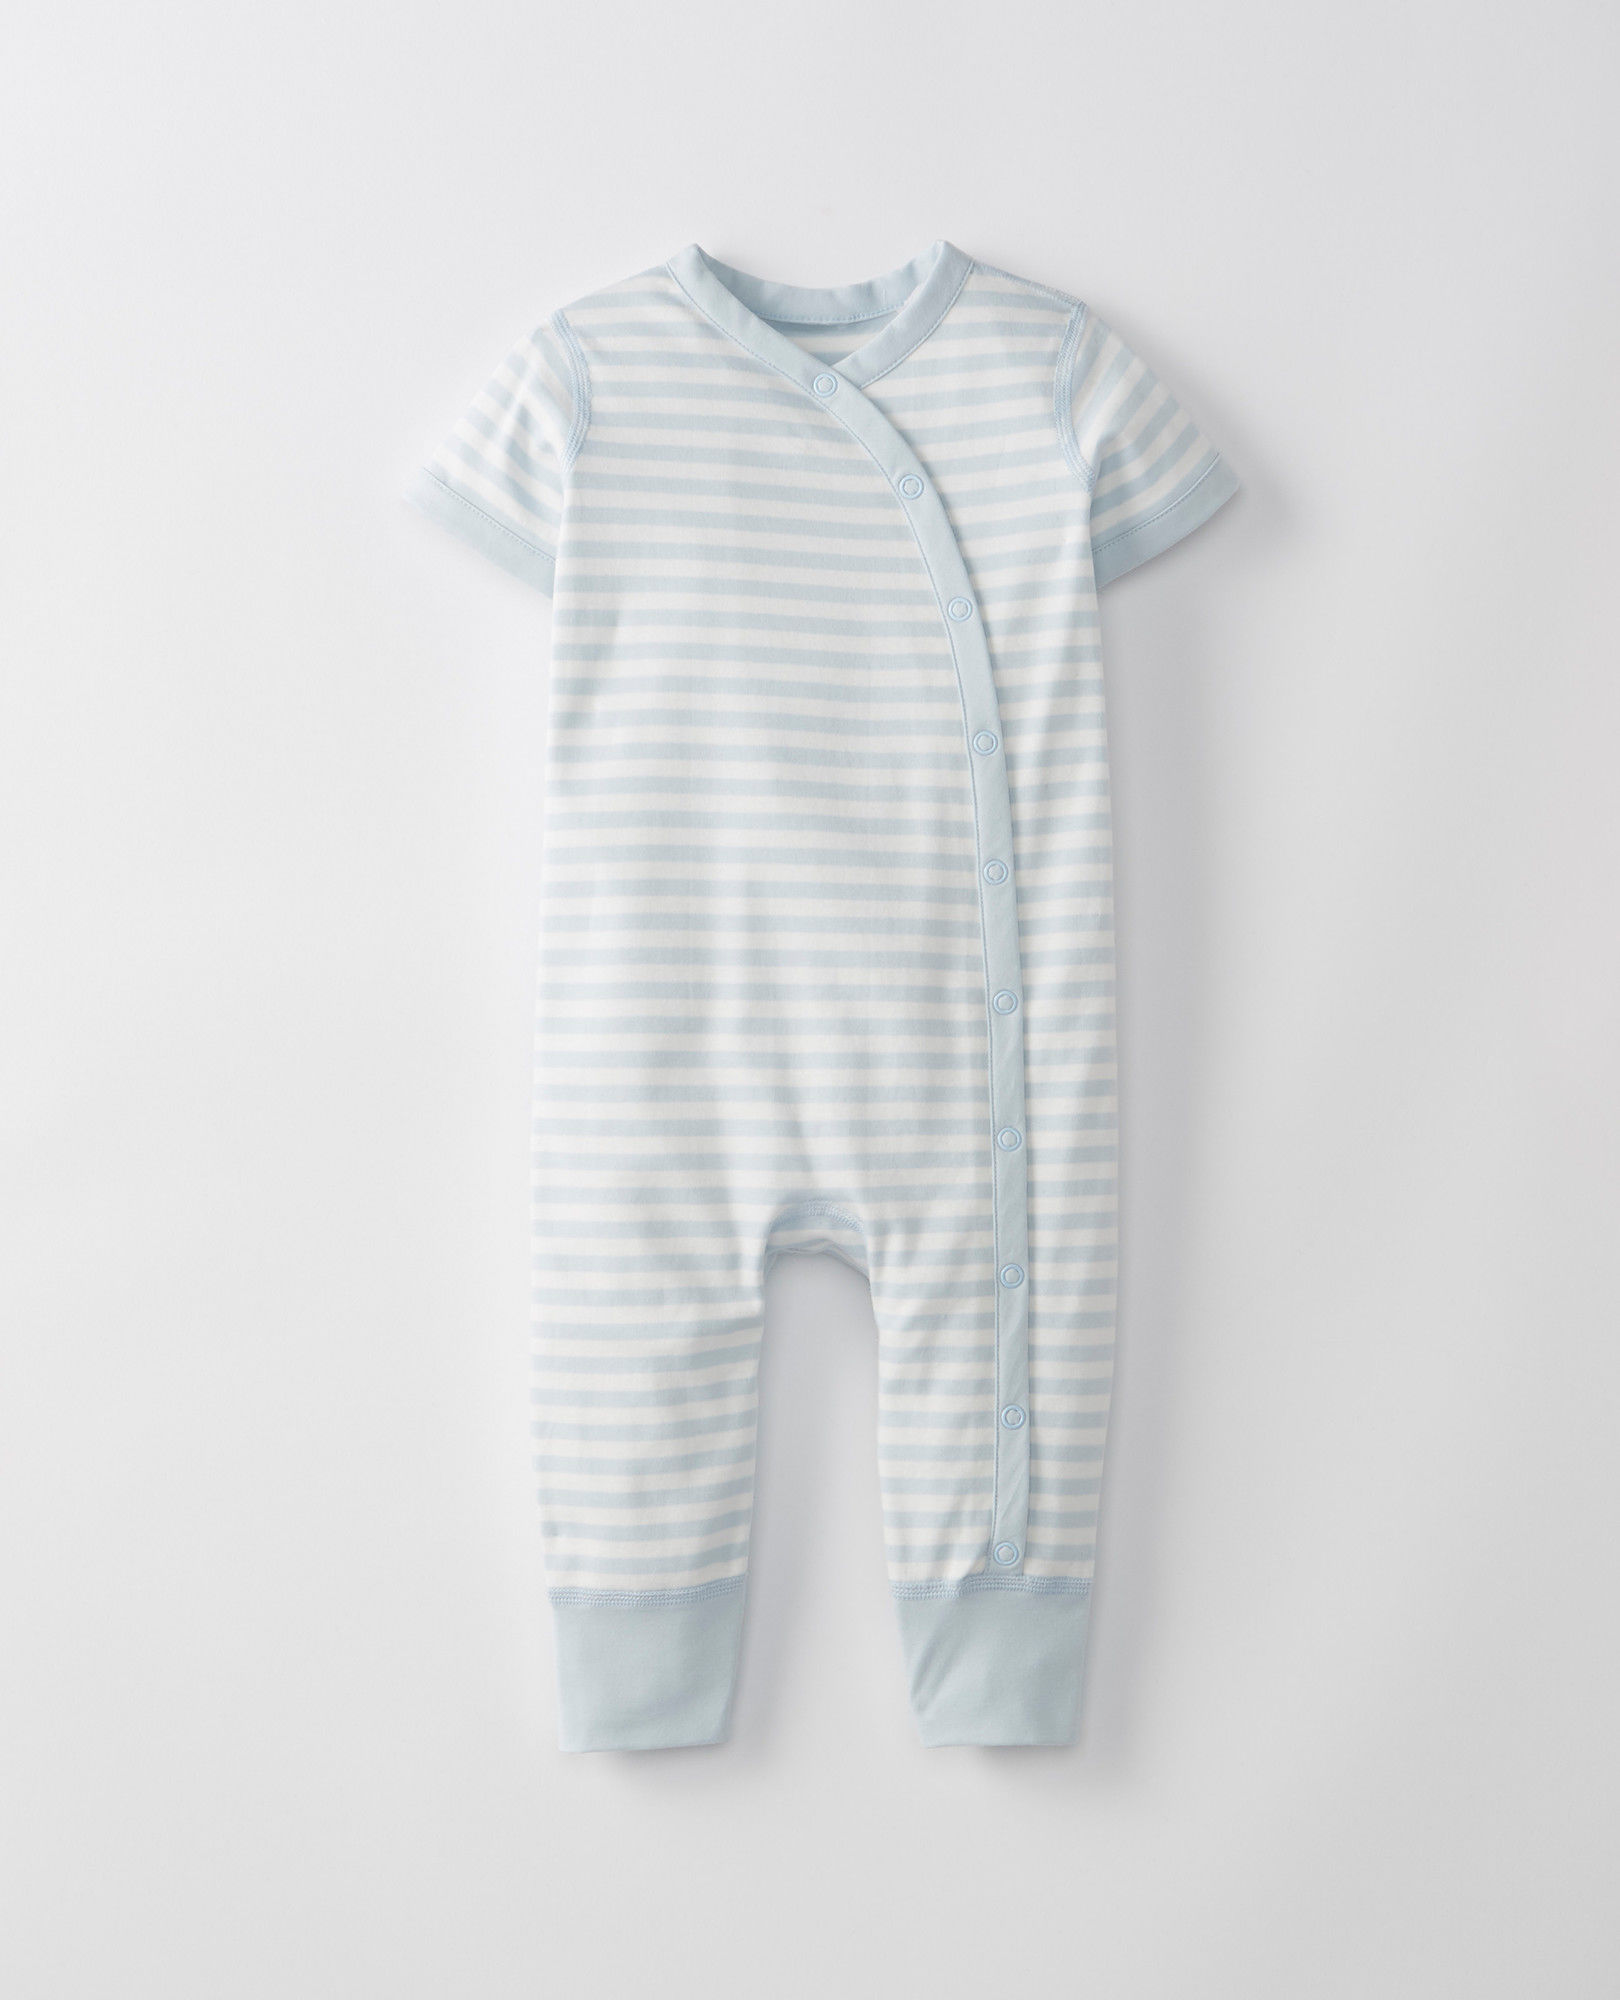 Baby Boy One Piece Outfits | Hanna Andersson